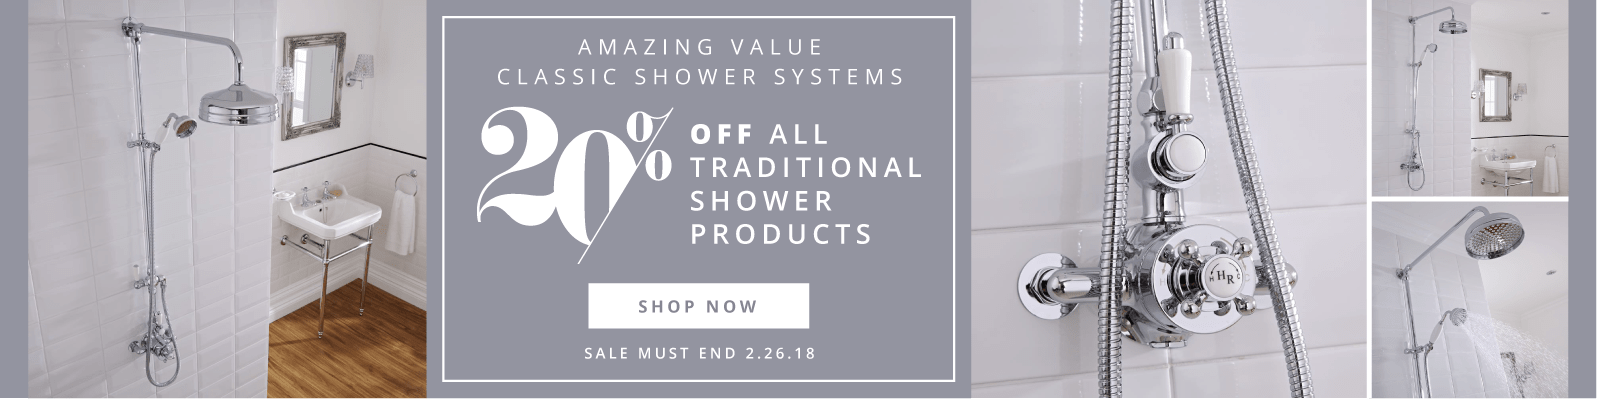 Amazing Value Classic Shower Systems 20% off all traditional shower products Sale Must End 2.26.18